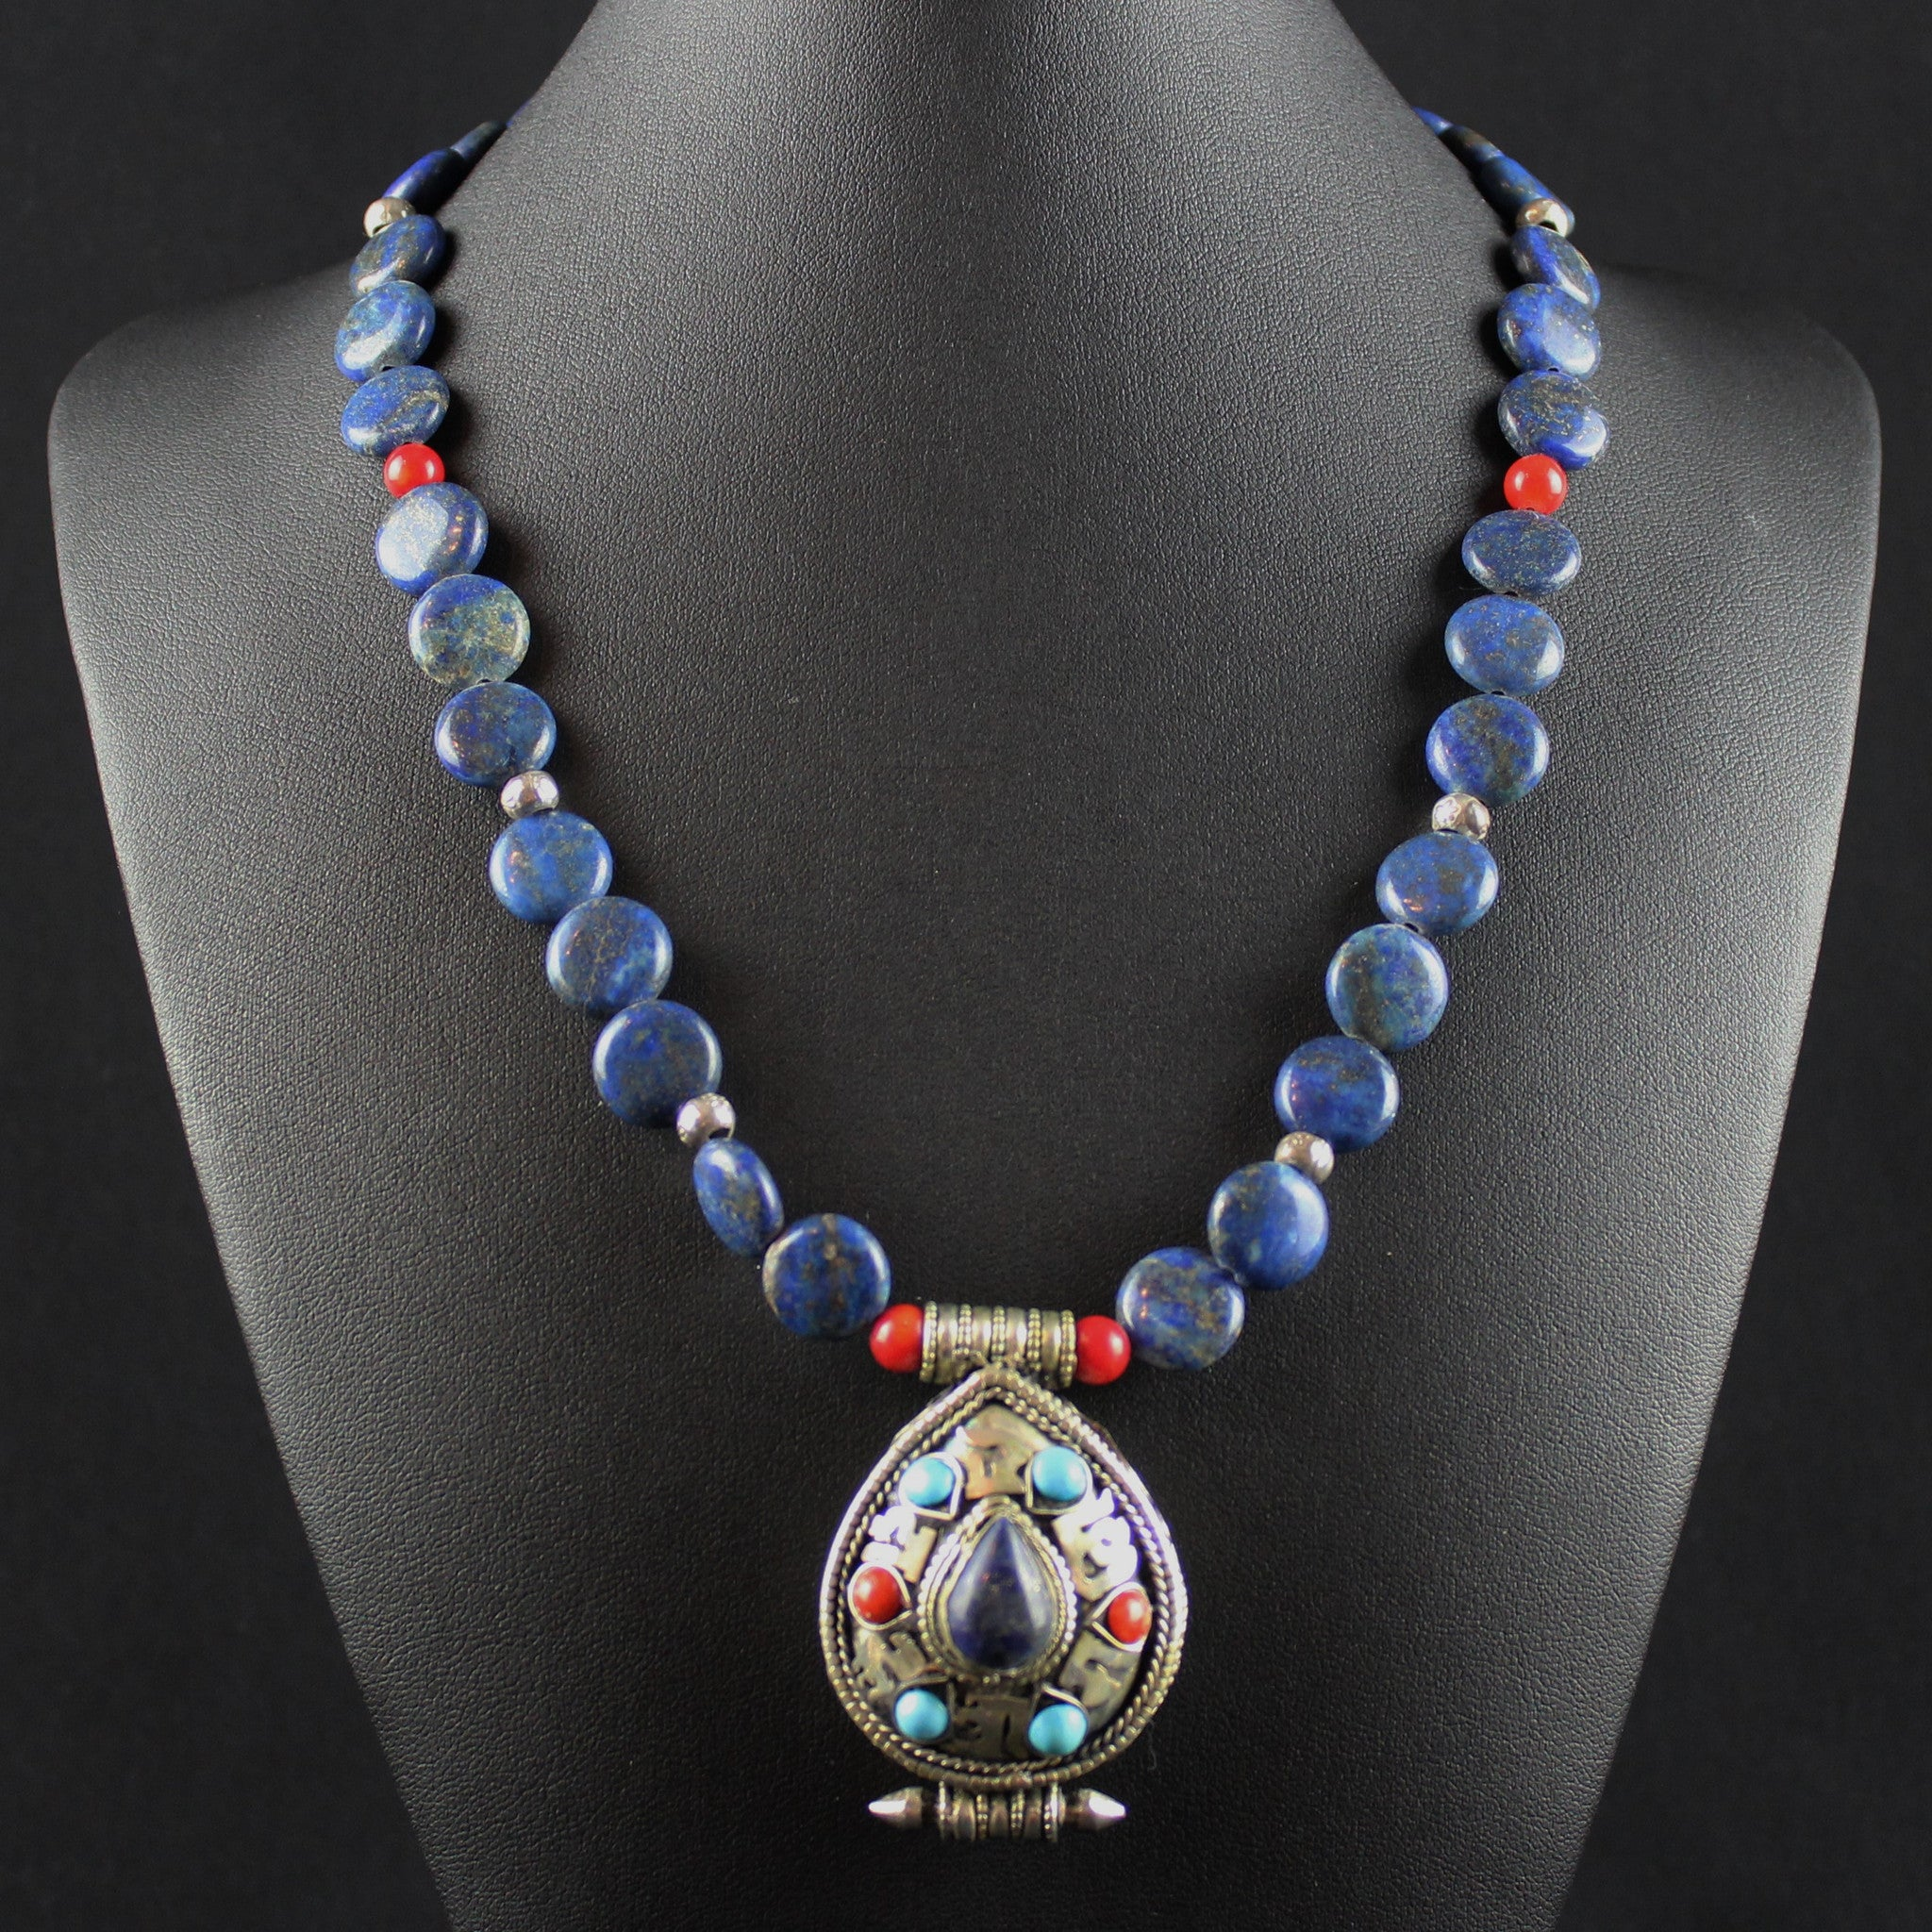 Susan M - Tibetan Prayer Box Necklace